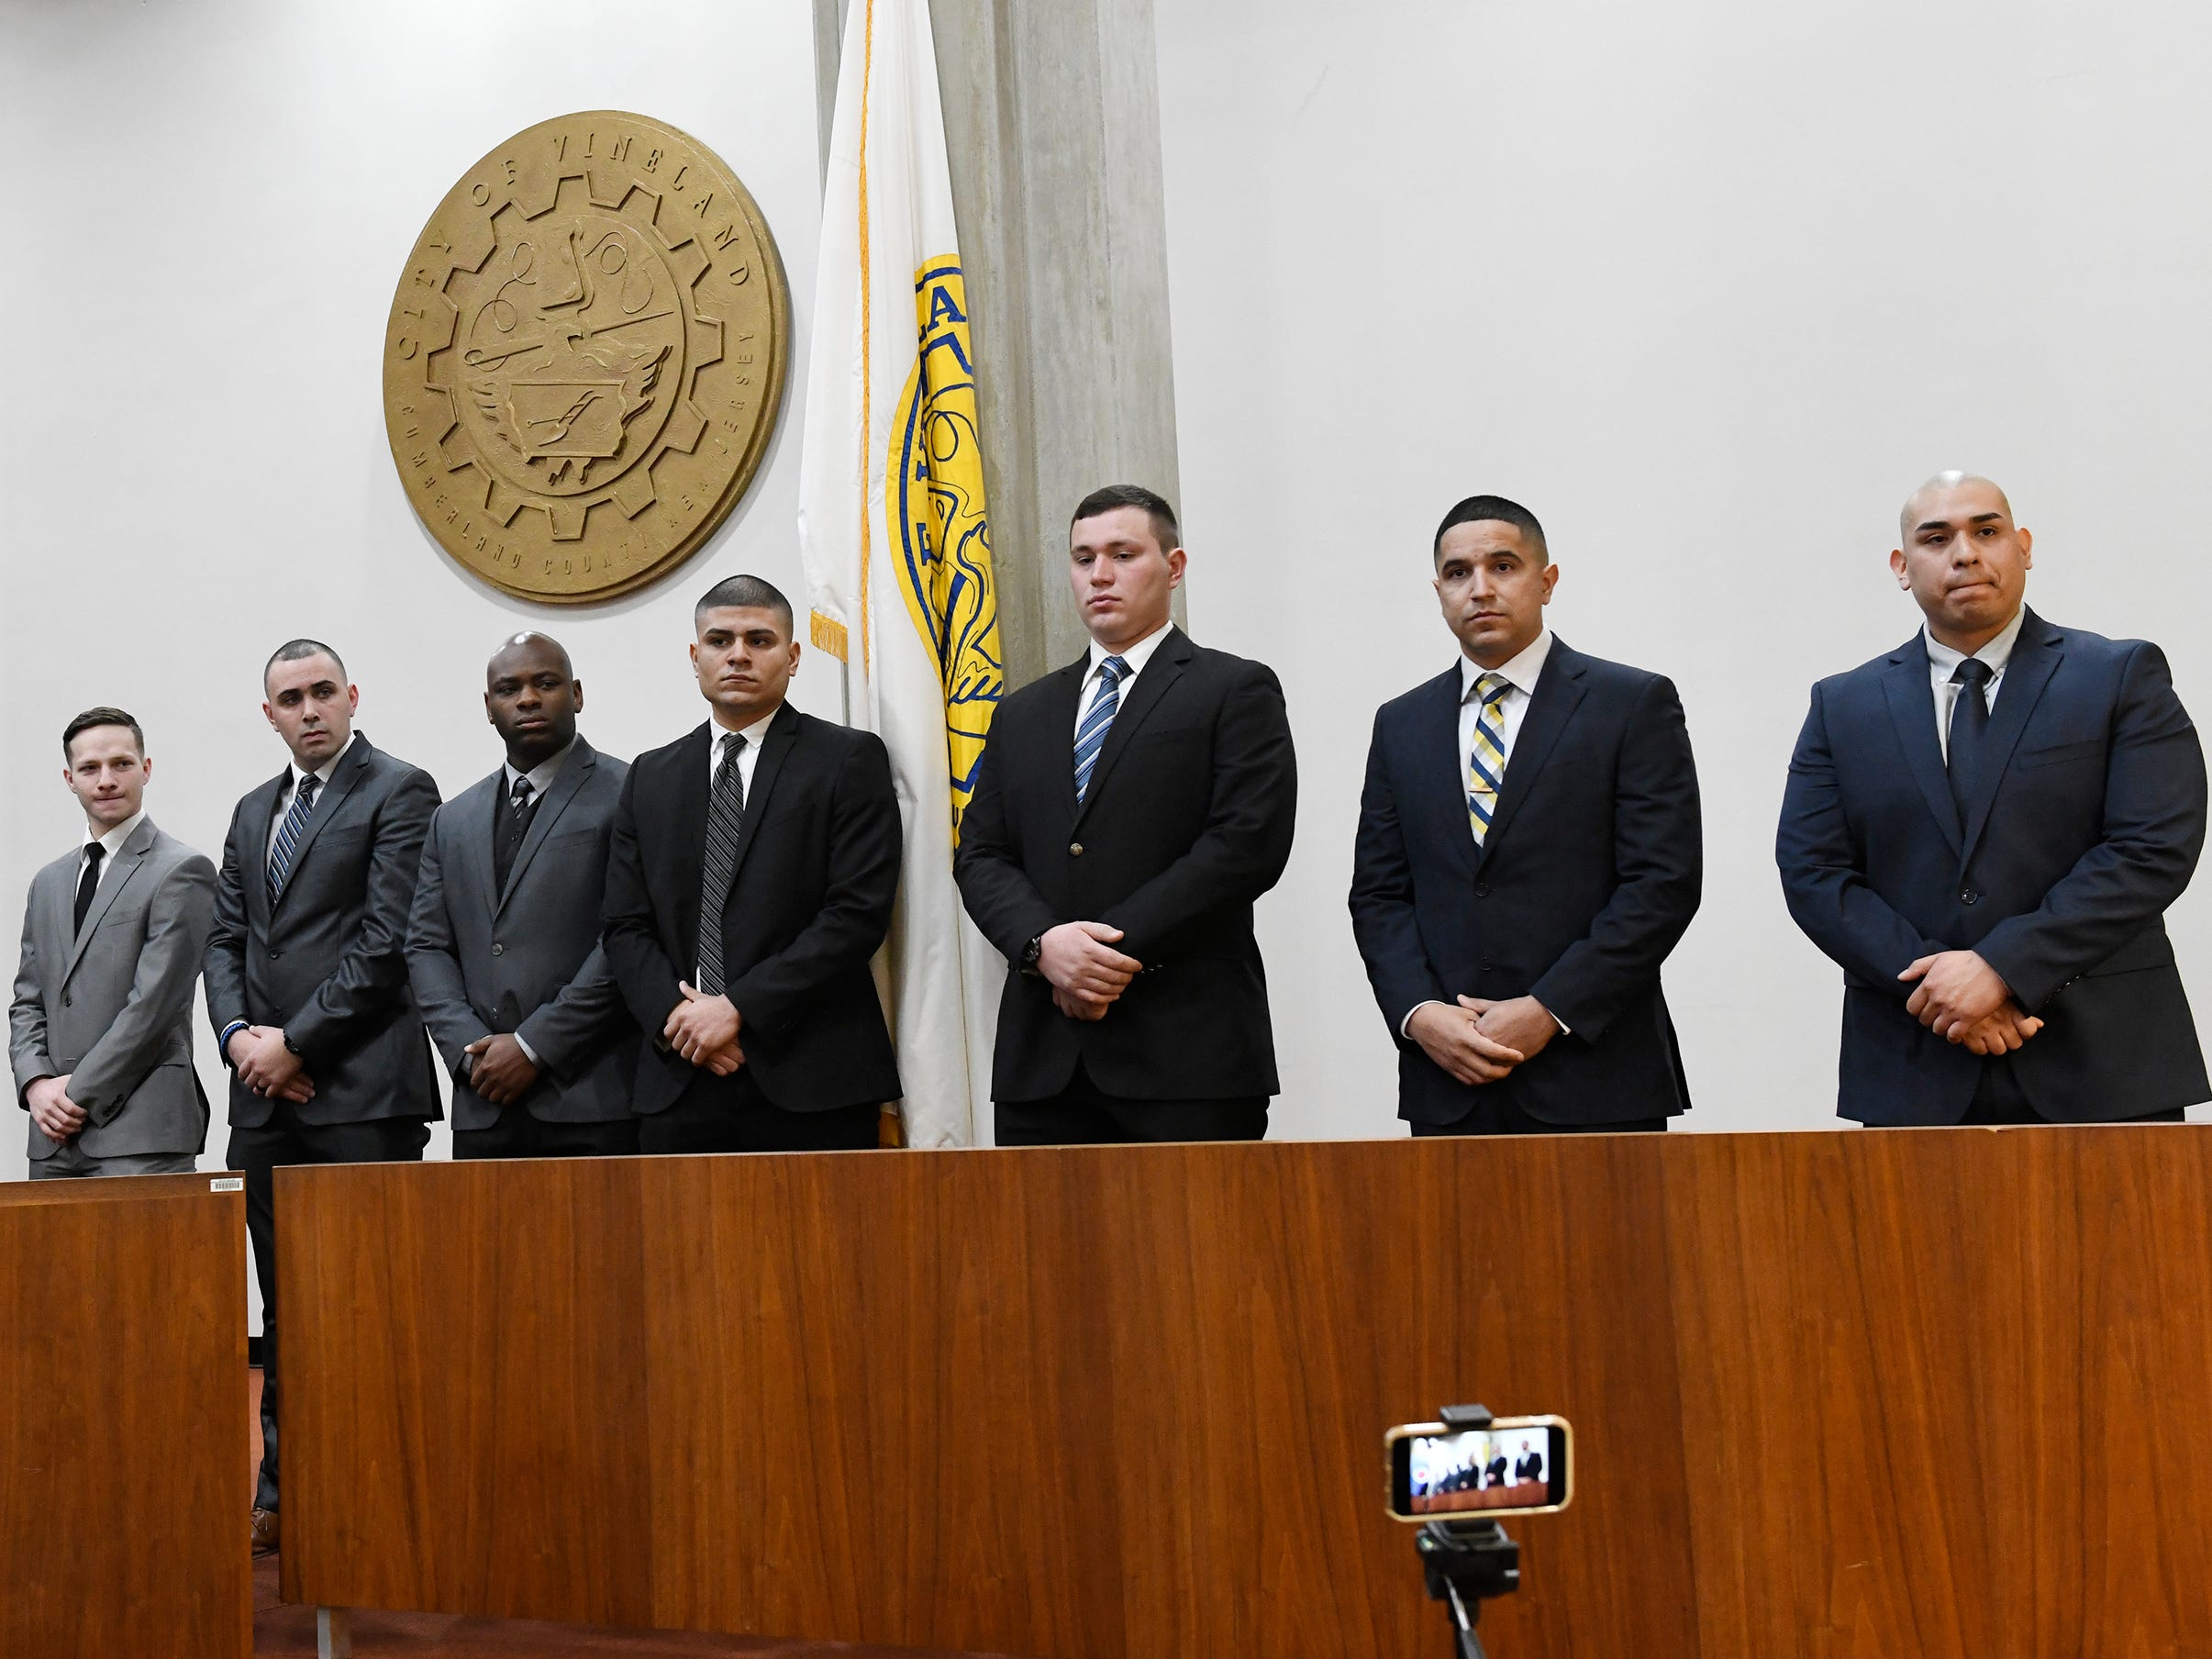 Mayor Anthony Fanucci swore in eight police officers at Vineland City Hall on Wednesday, Feb.27, 2019. (From l to r) Pictured here are Raul D. Rosario, John M. Rizzo, Alfredo J. Rodriguez, Teyson M. Mayes, Isaiah Rosa, Christopher Yuhas, Edmanuel Vega and Jovanni Briones.